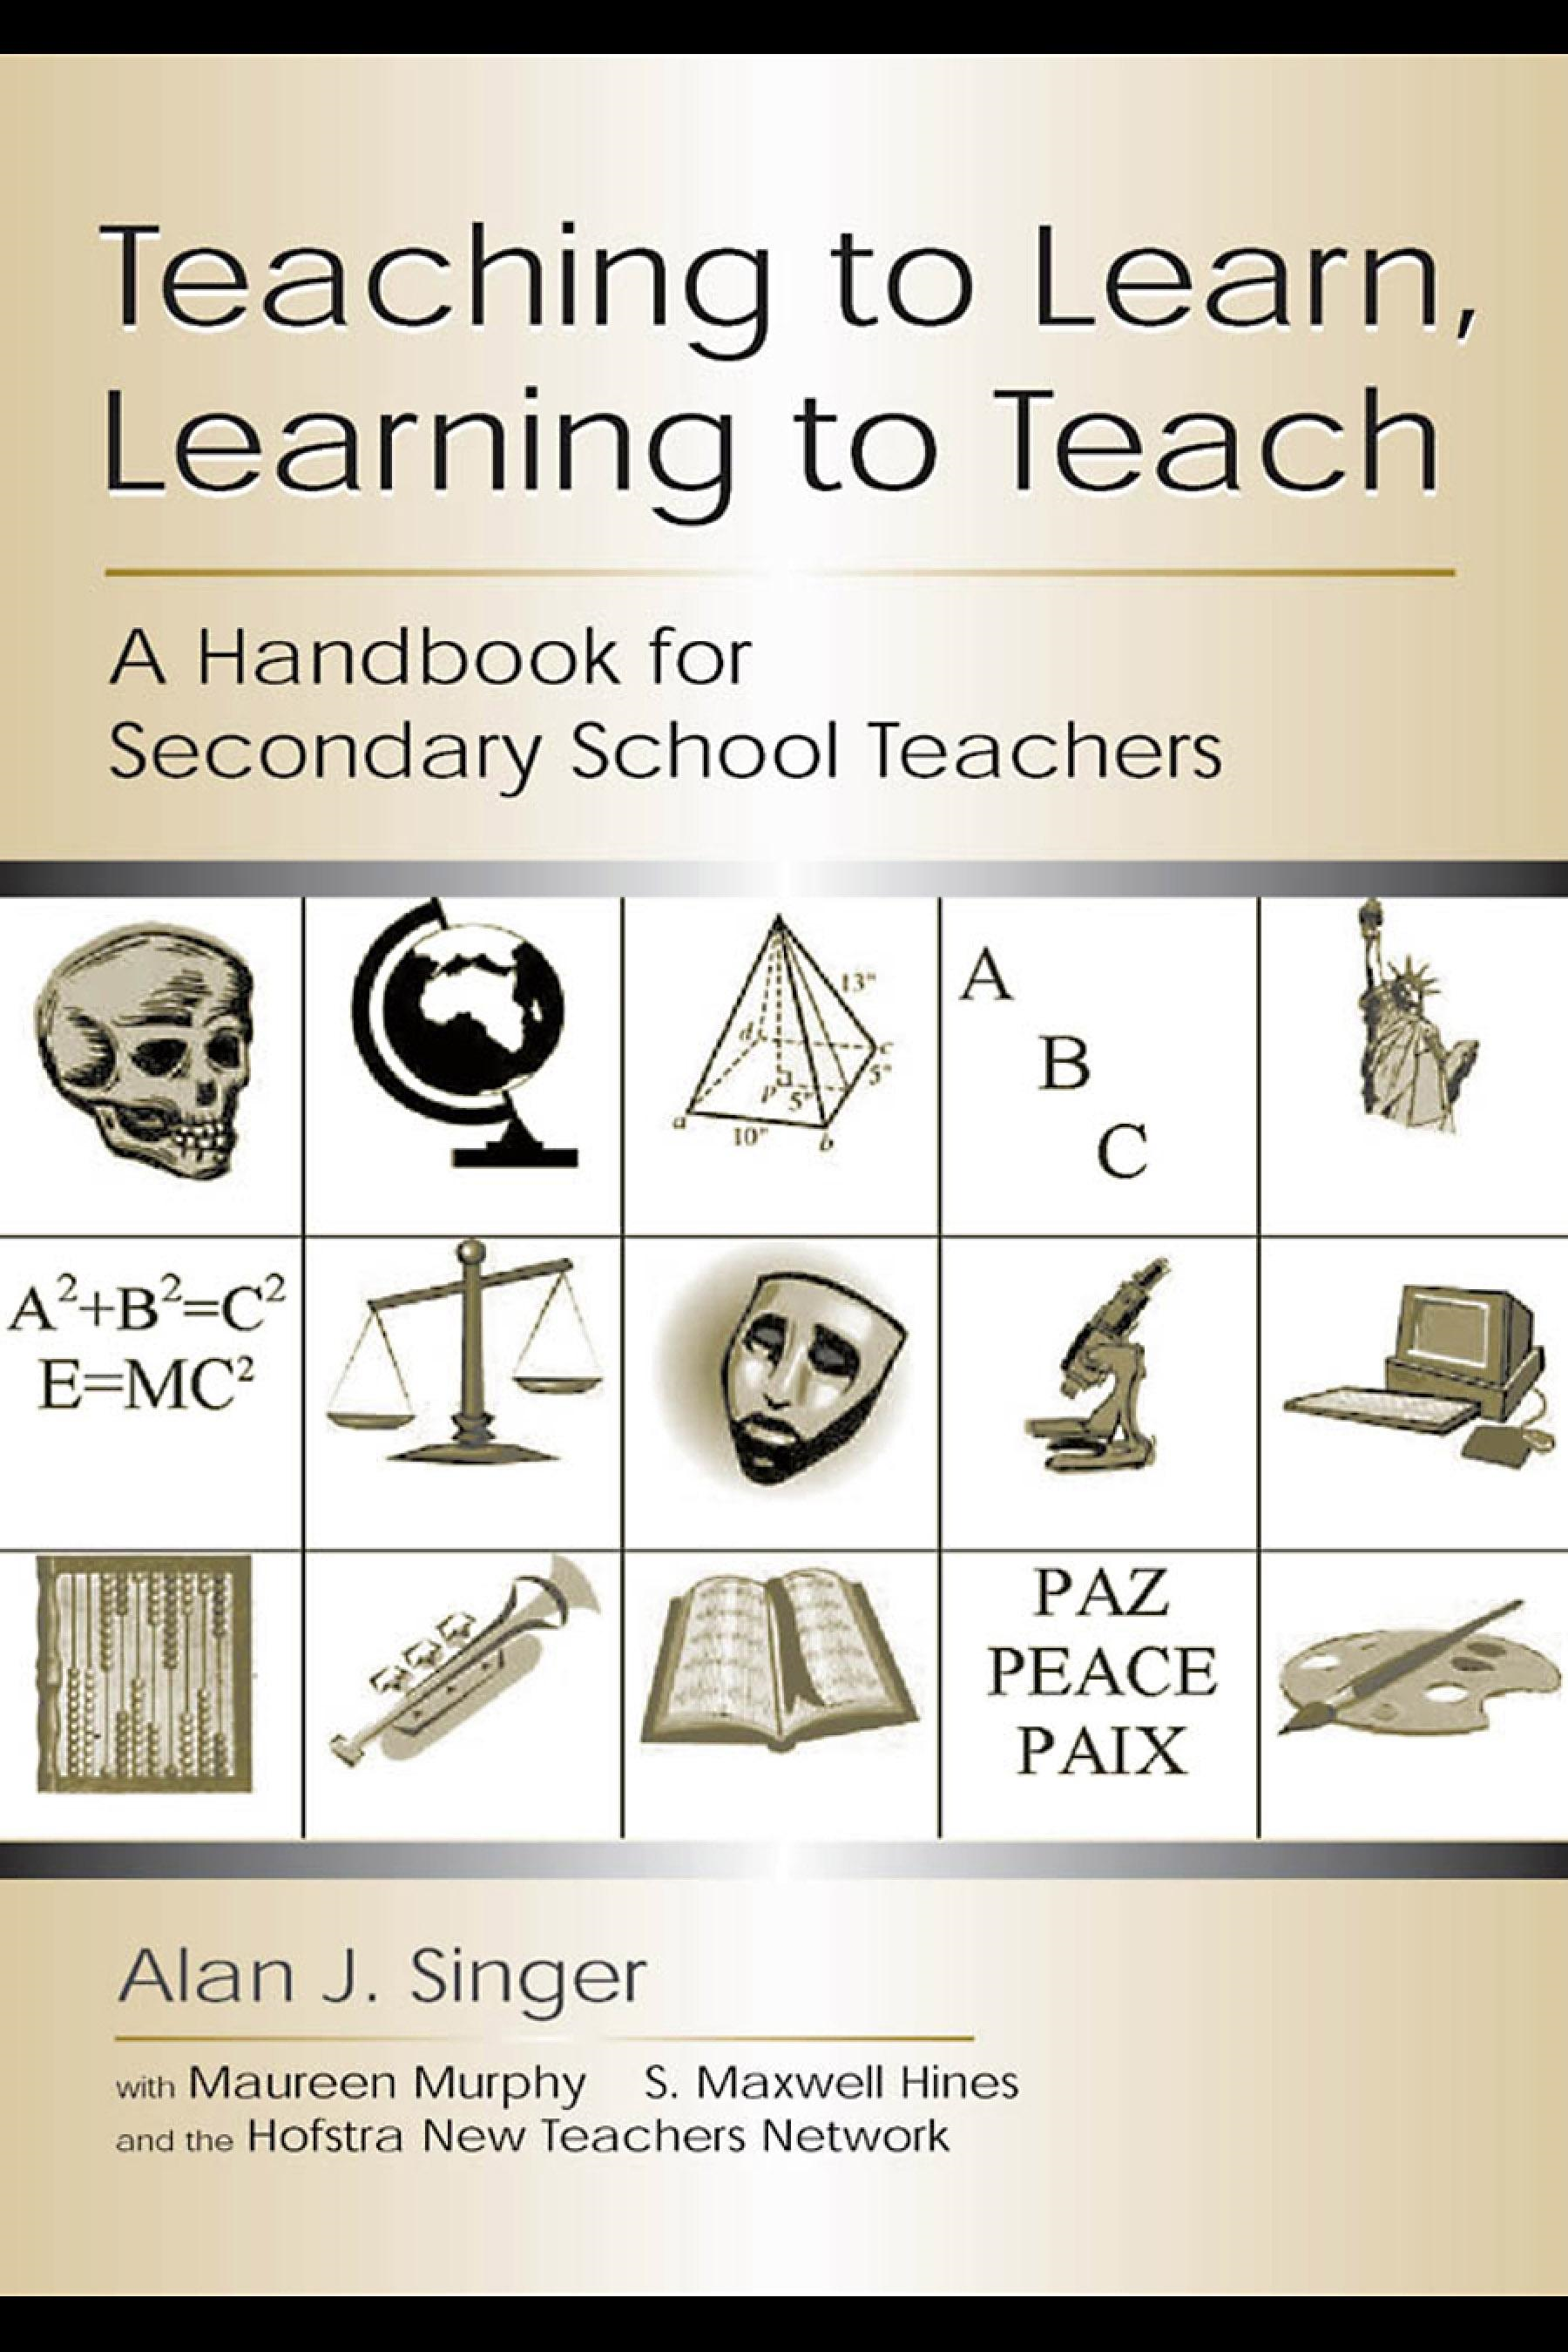 Teaching to Learn, Learning to Teach: A Handbook for Secondary School Teachers